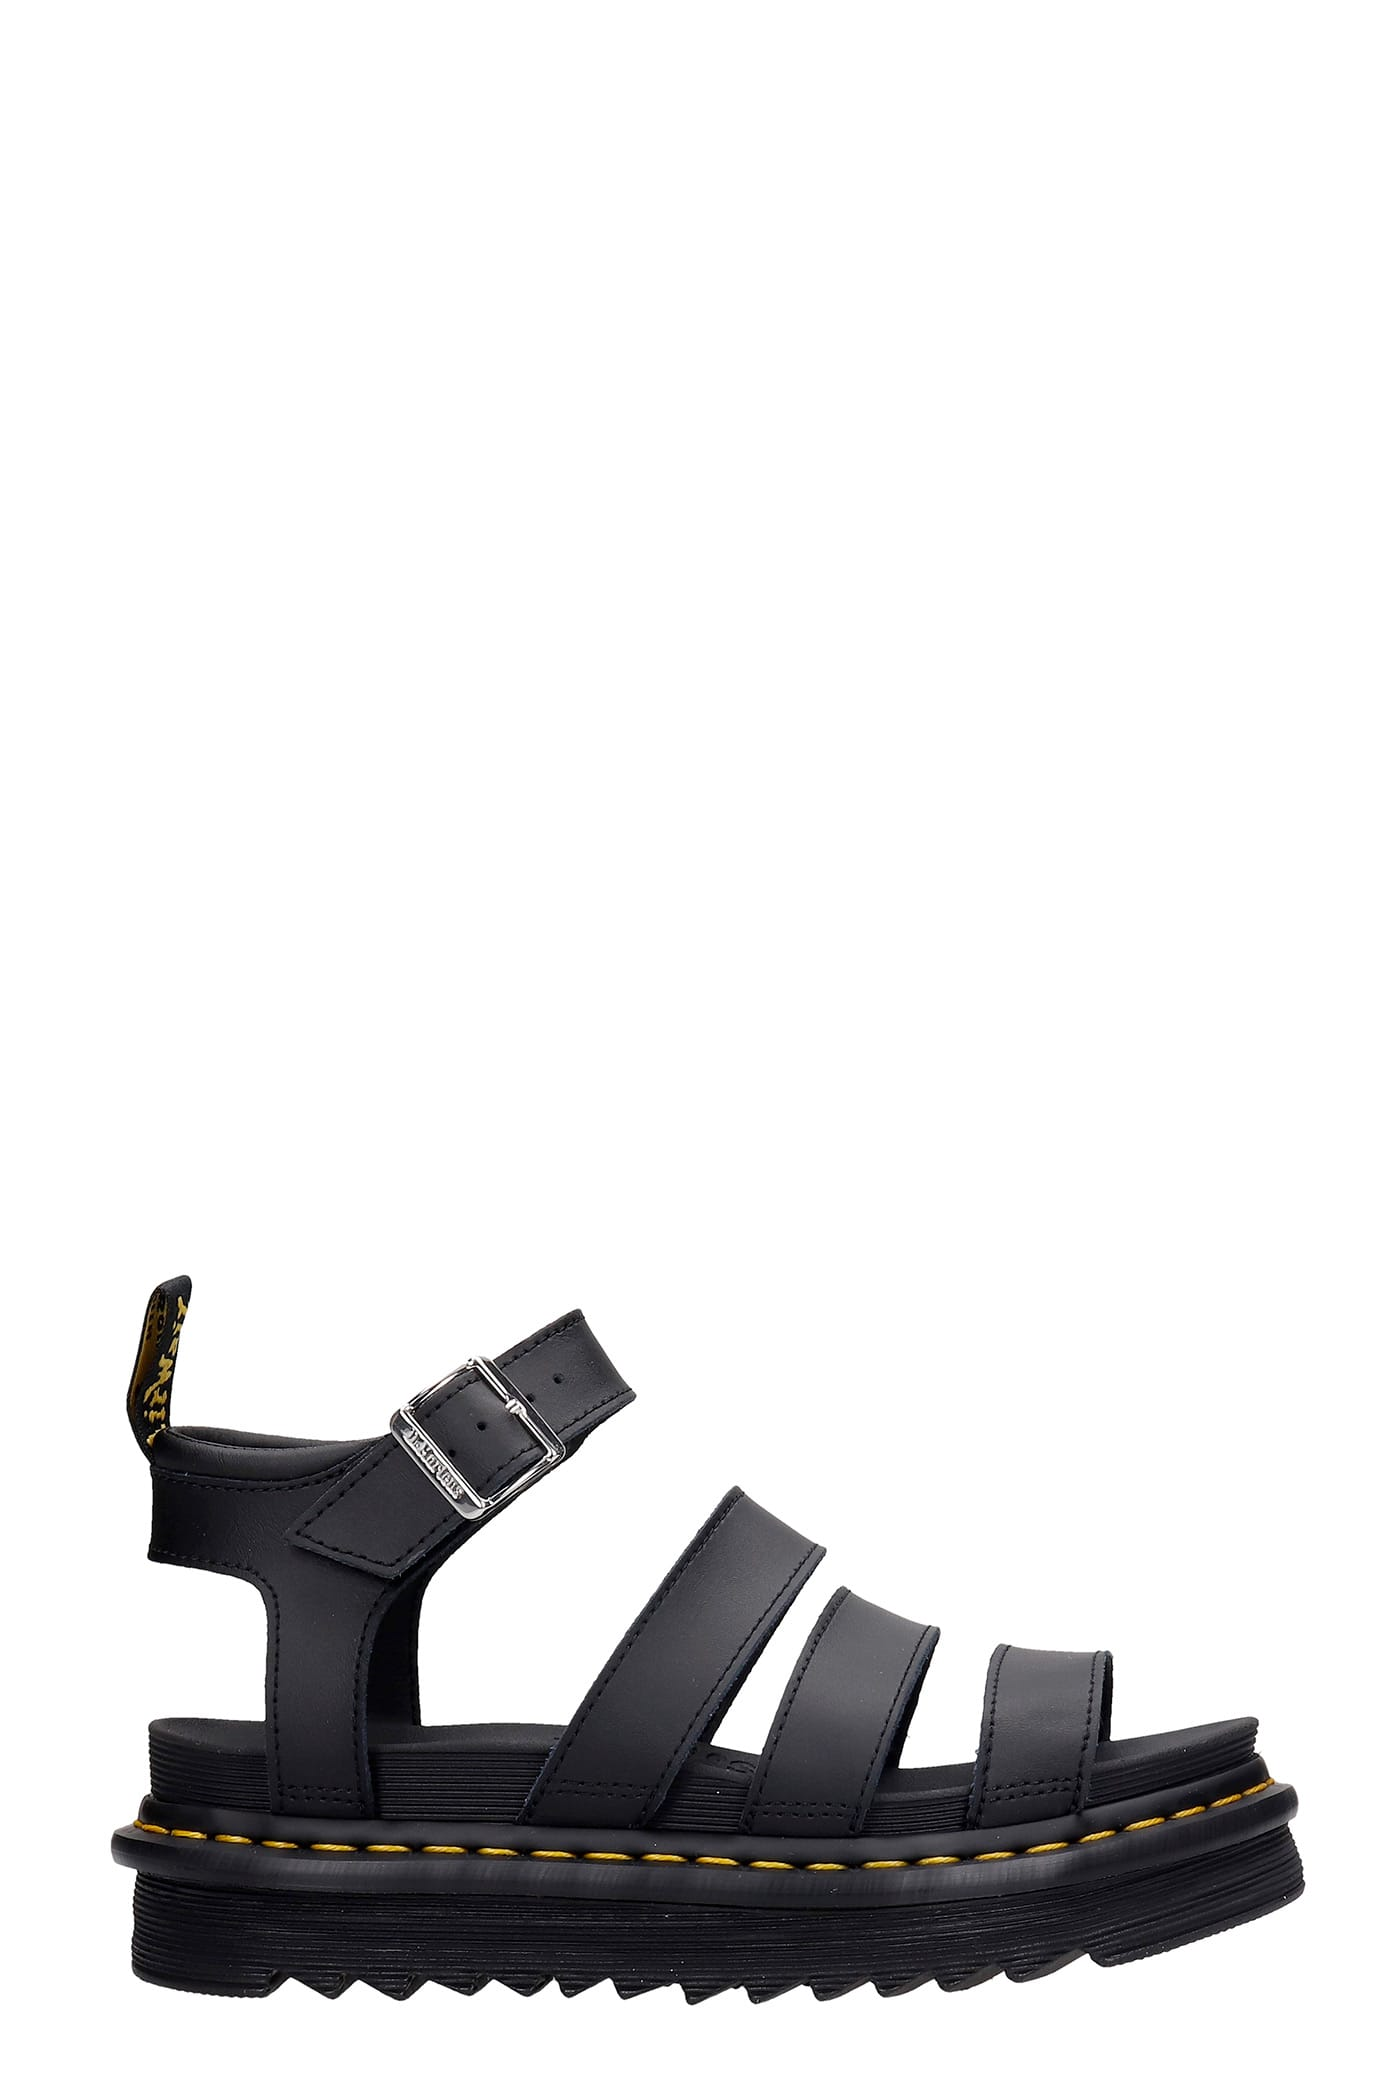 Dr. Martens Leathers BLAIRE SANDALS IN BLACK LEATHER